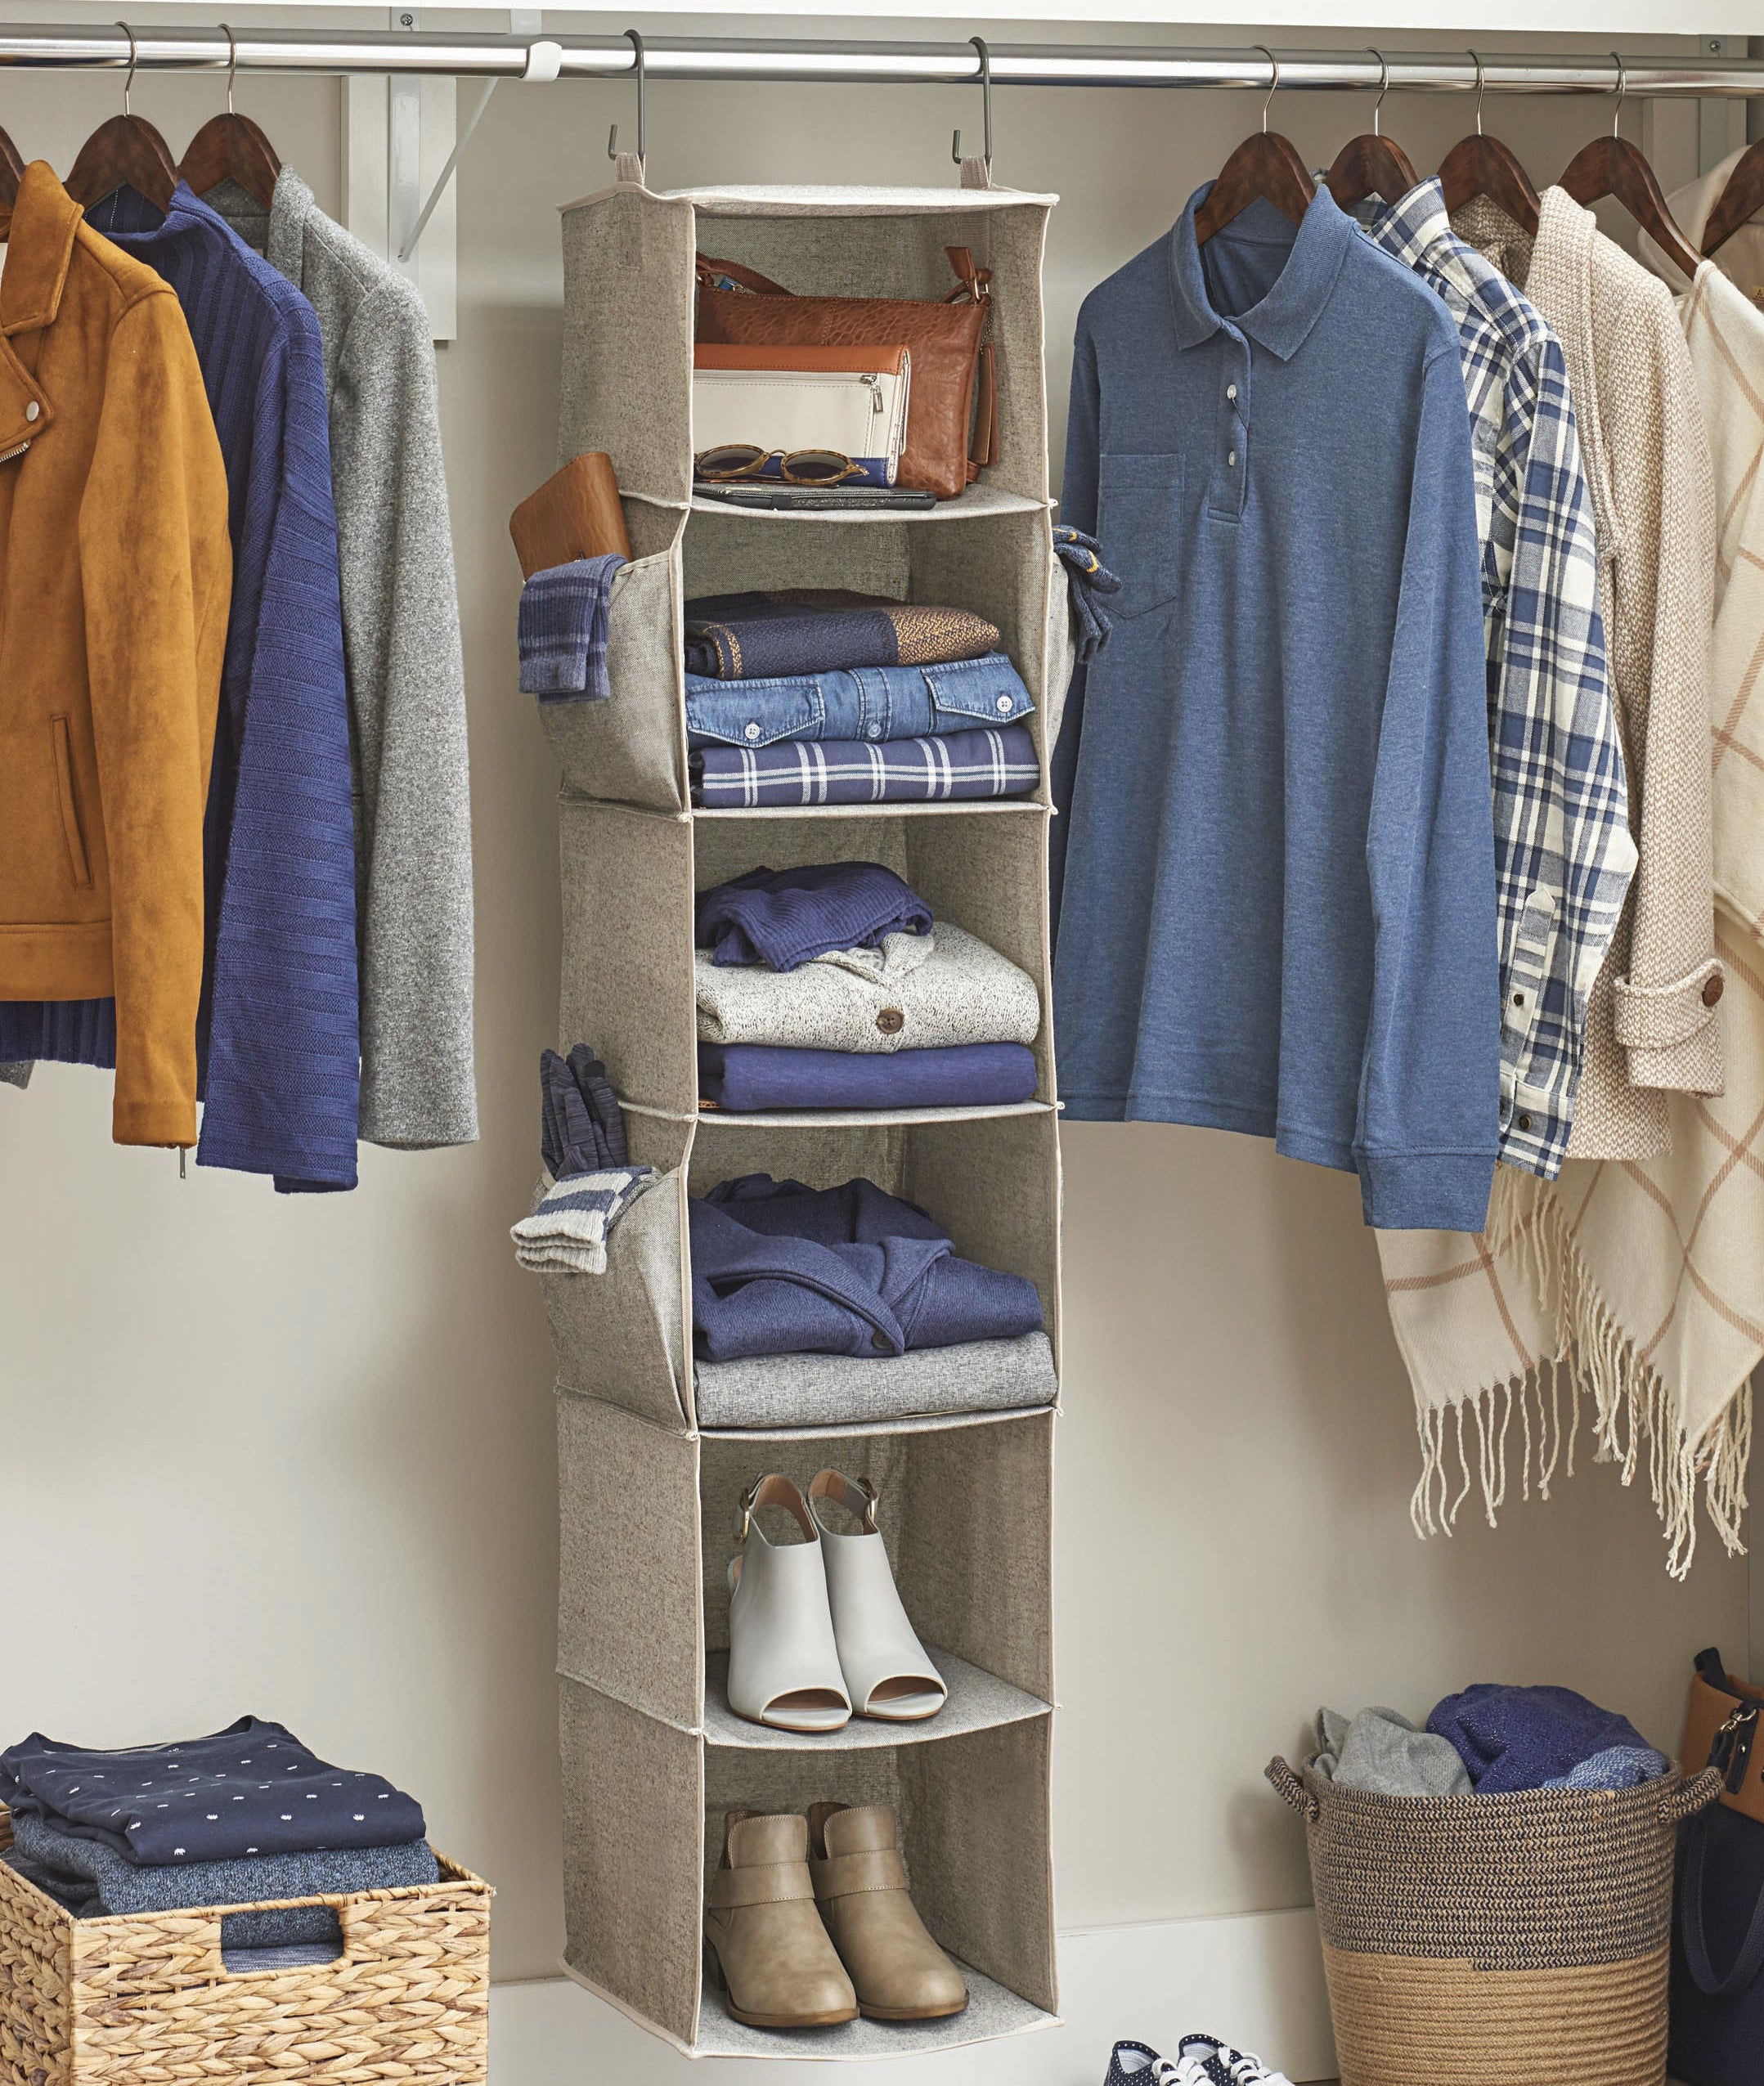 A beige hanging organizer shelf with six square slots